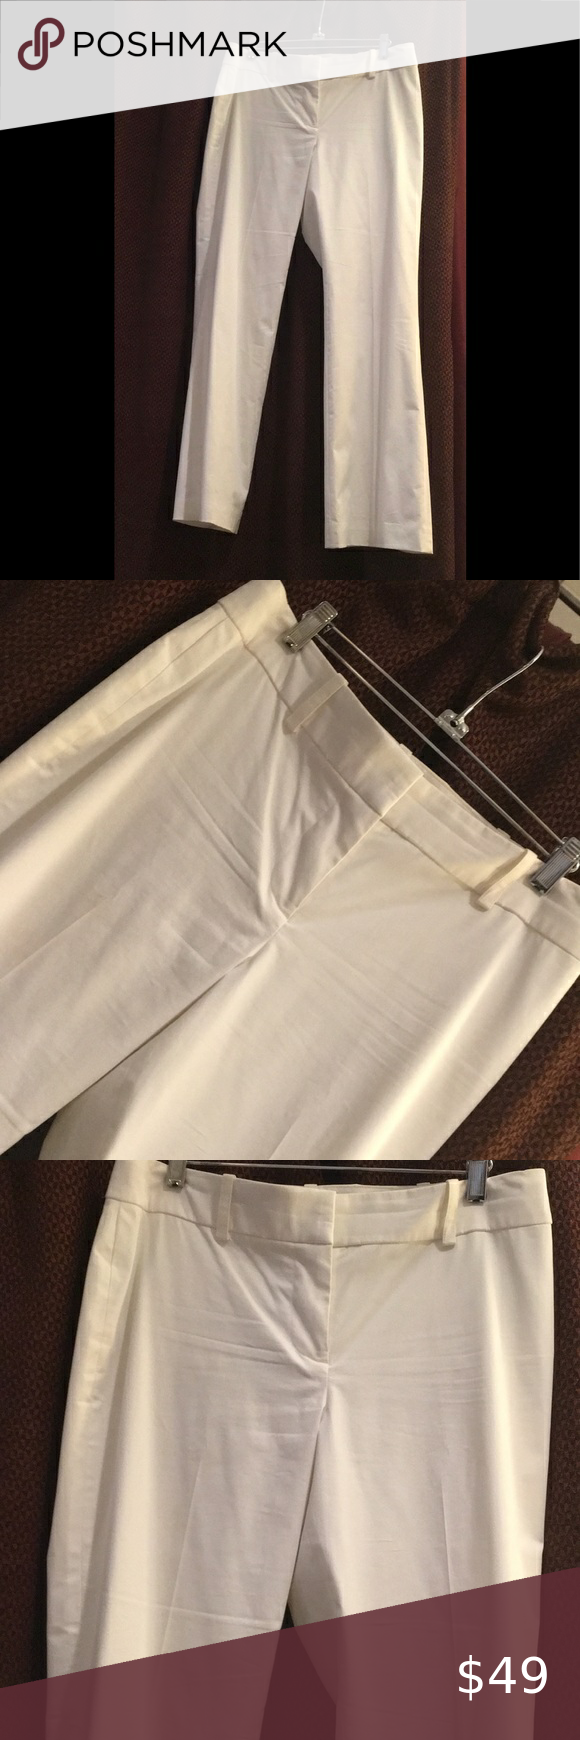 HOST PICK! White Slacks with Flat Front HOST PICK! Ann Taylor White Flat Front Slacks Size 8P Great Belt Loops (Belt not included) Never Been Worn! NWT Ann Taylor Pants Trousers #whiteslacks